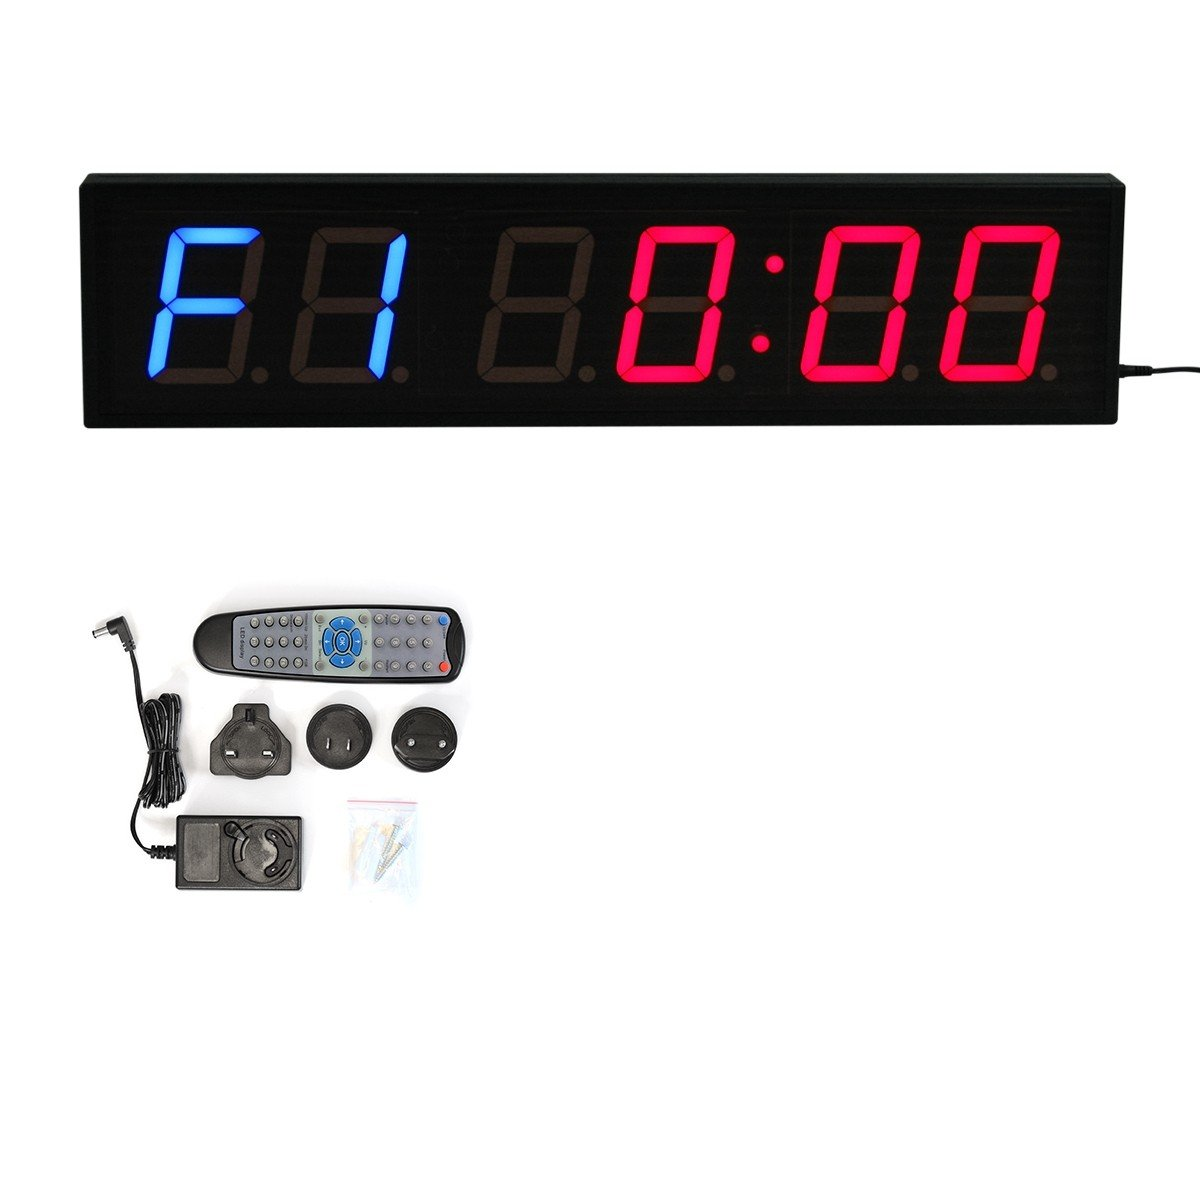 23 Led Interval Timer Gym Wall Clock Countdown For Training